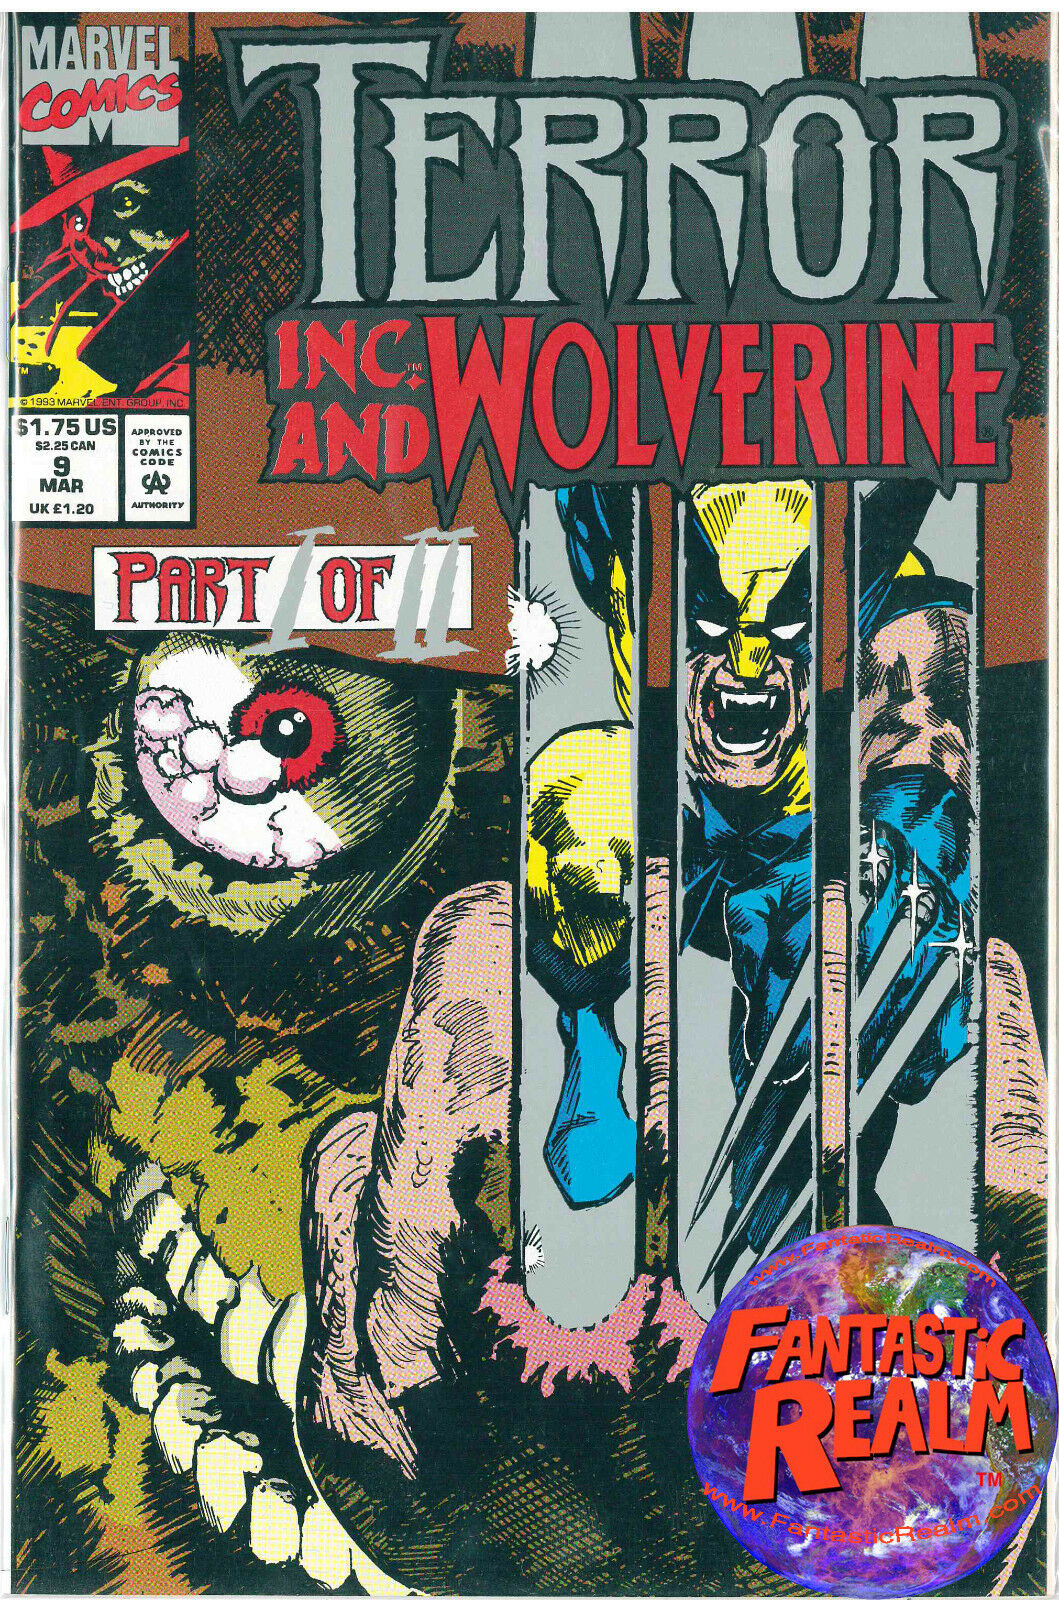 TERROR INC. AND WOLVERINE  #9, 10  PART 1 & 2  (1993) MARVEL COMICS